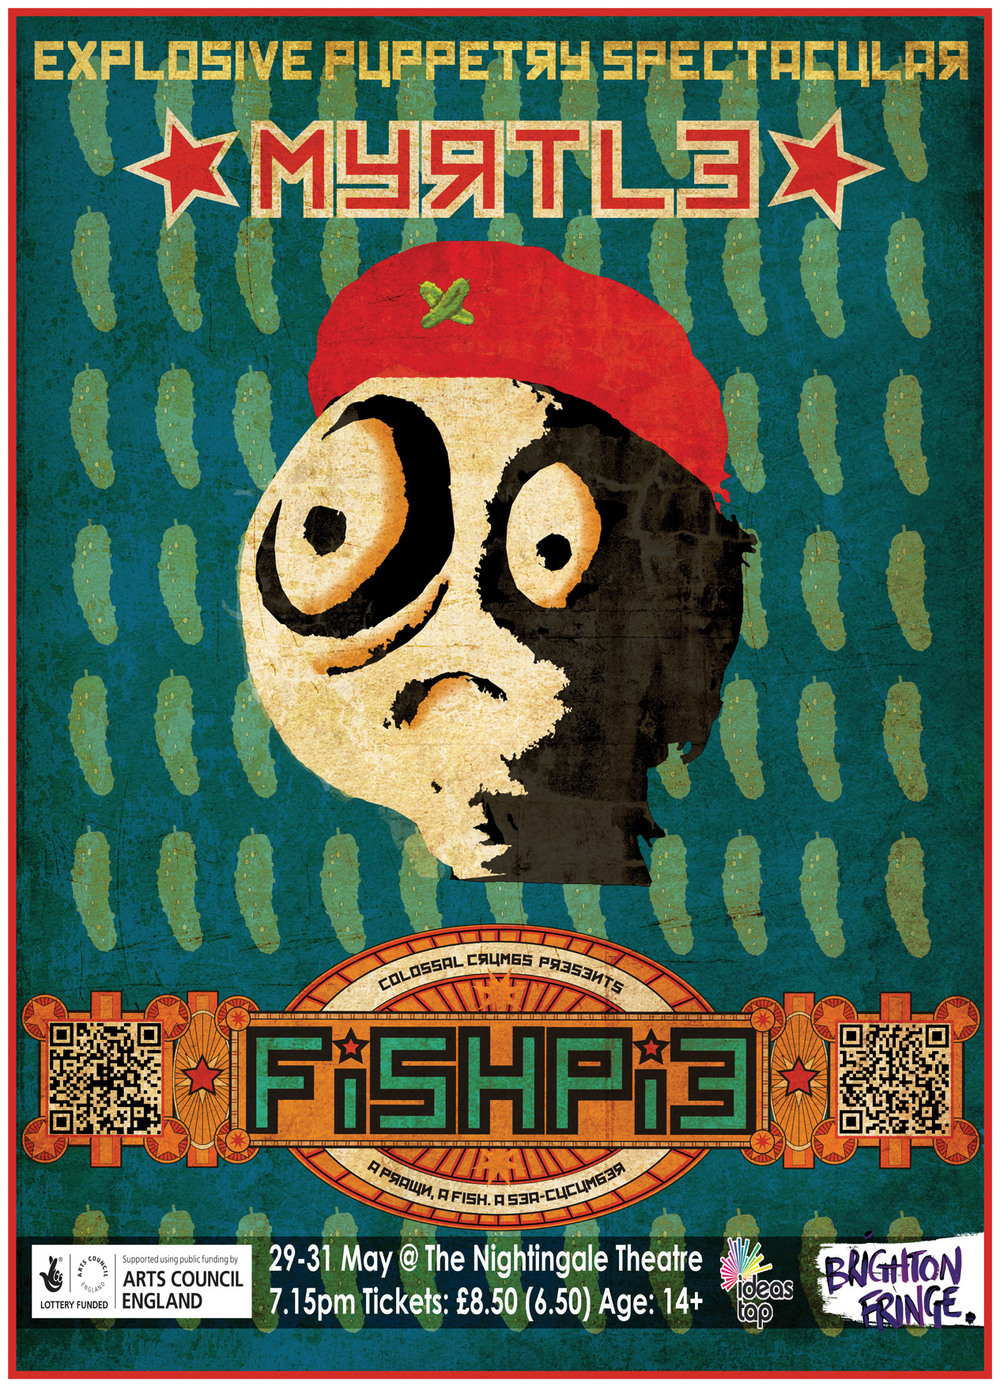 Poster for Colossal Crumbs 'Fish Pie' puppetry show for Brighton Fringe 2013. Part of a set of three (including 'Ludwig' & 'Cuthbert')